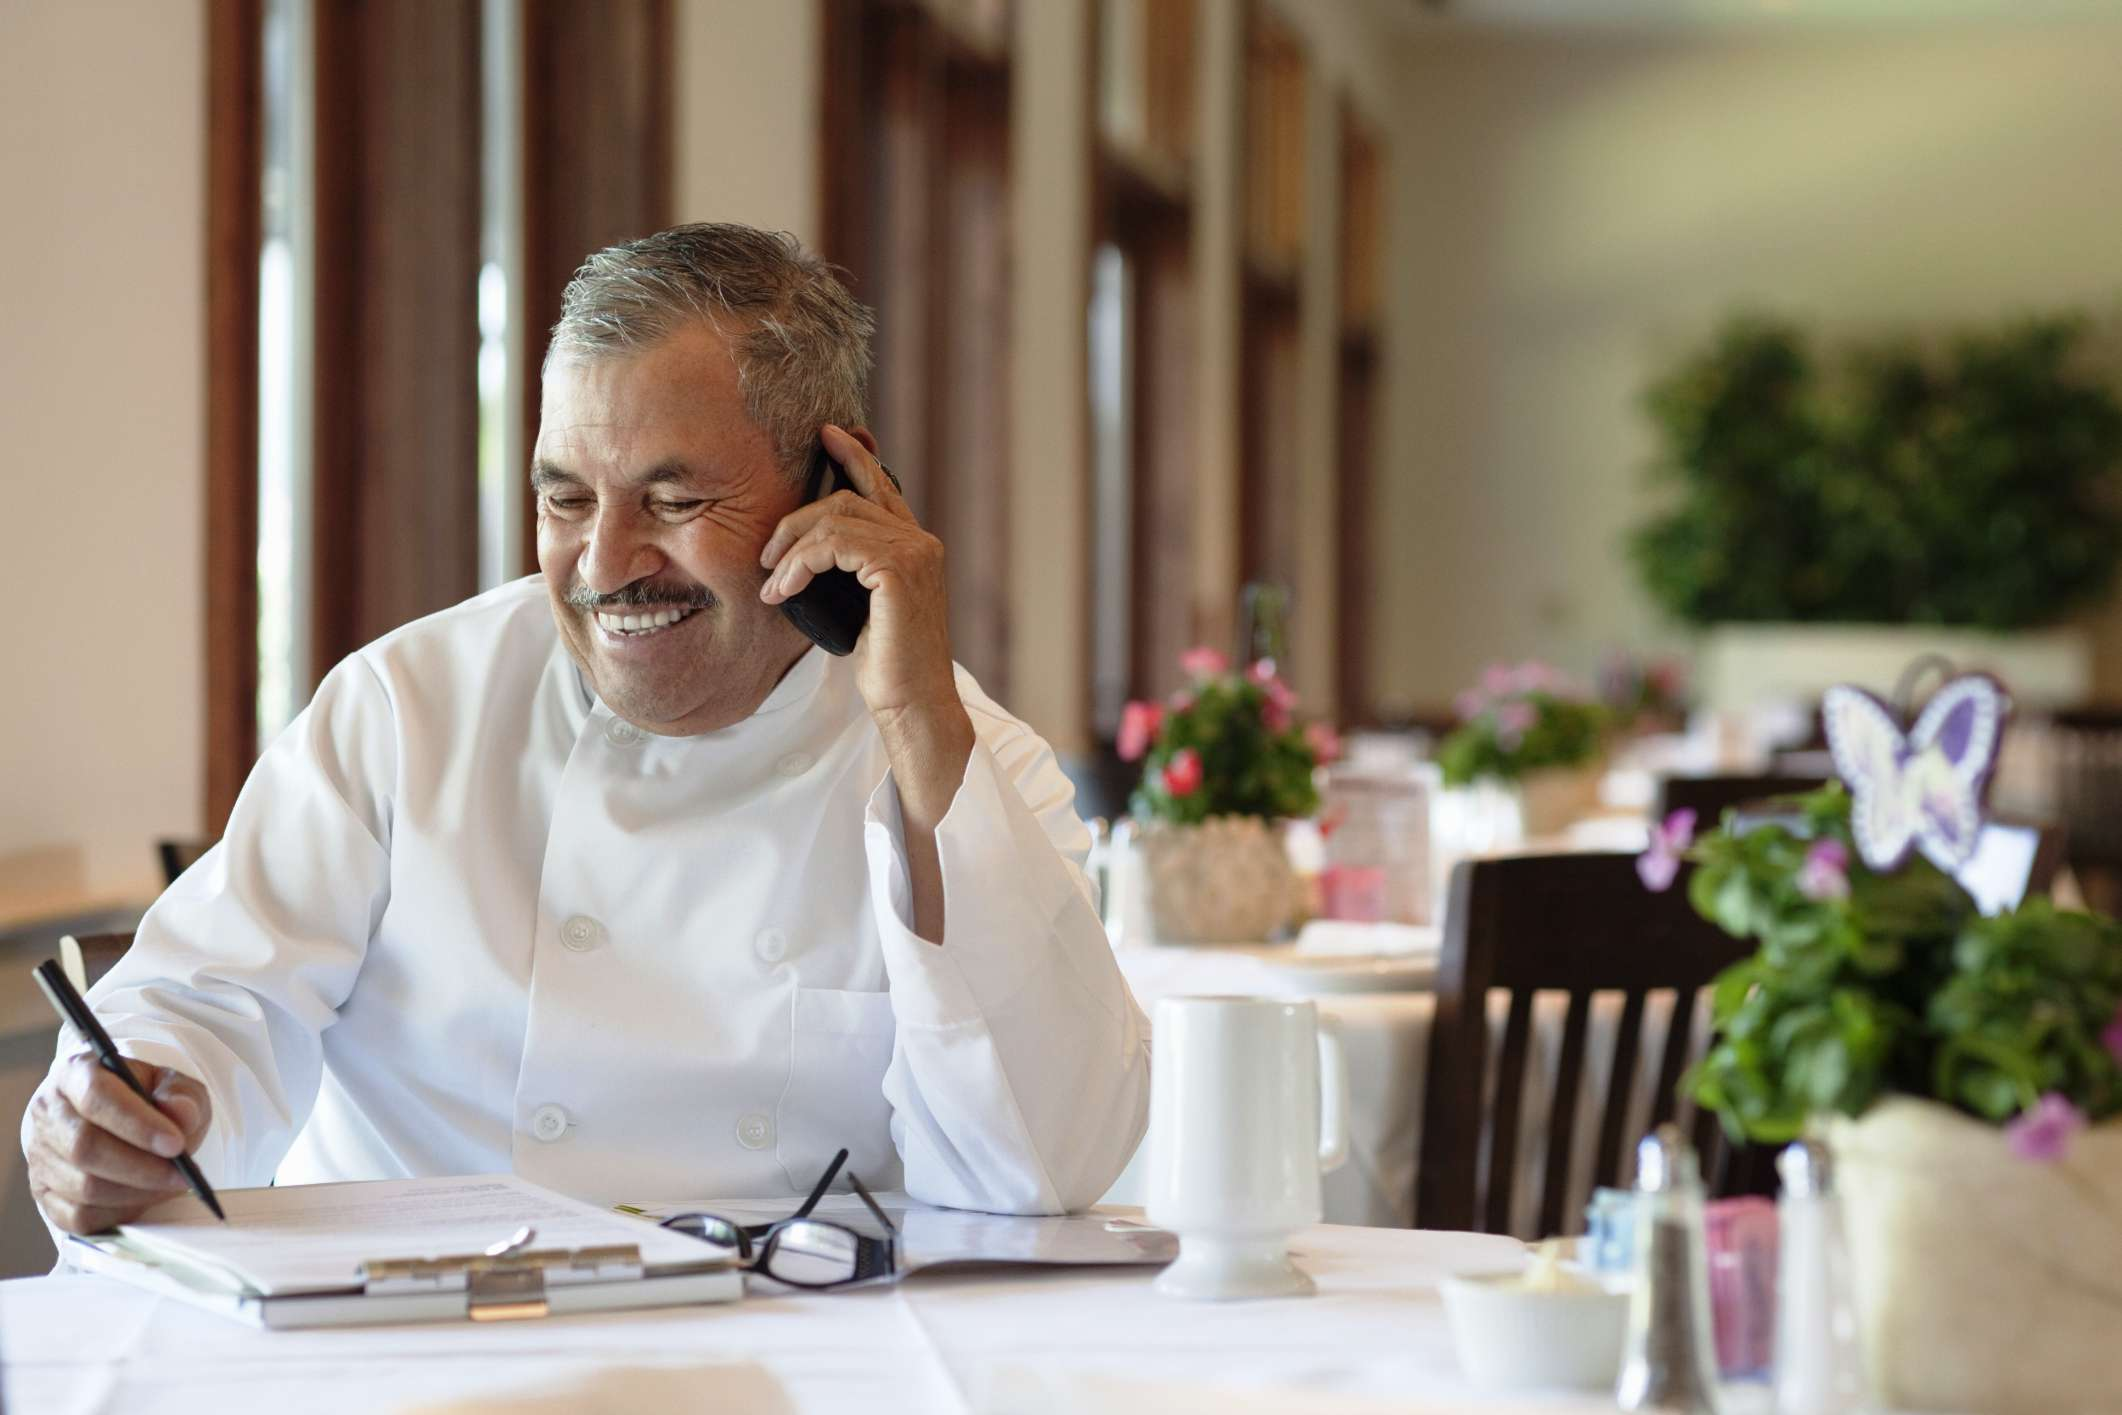 Chef filling out orders while on the phone